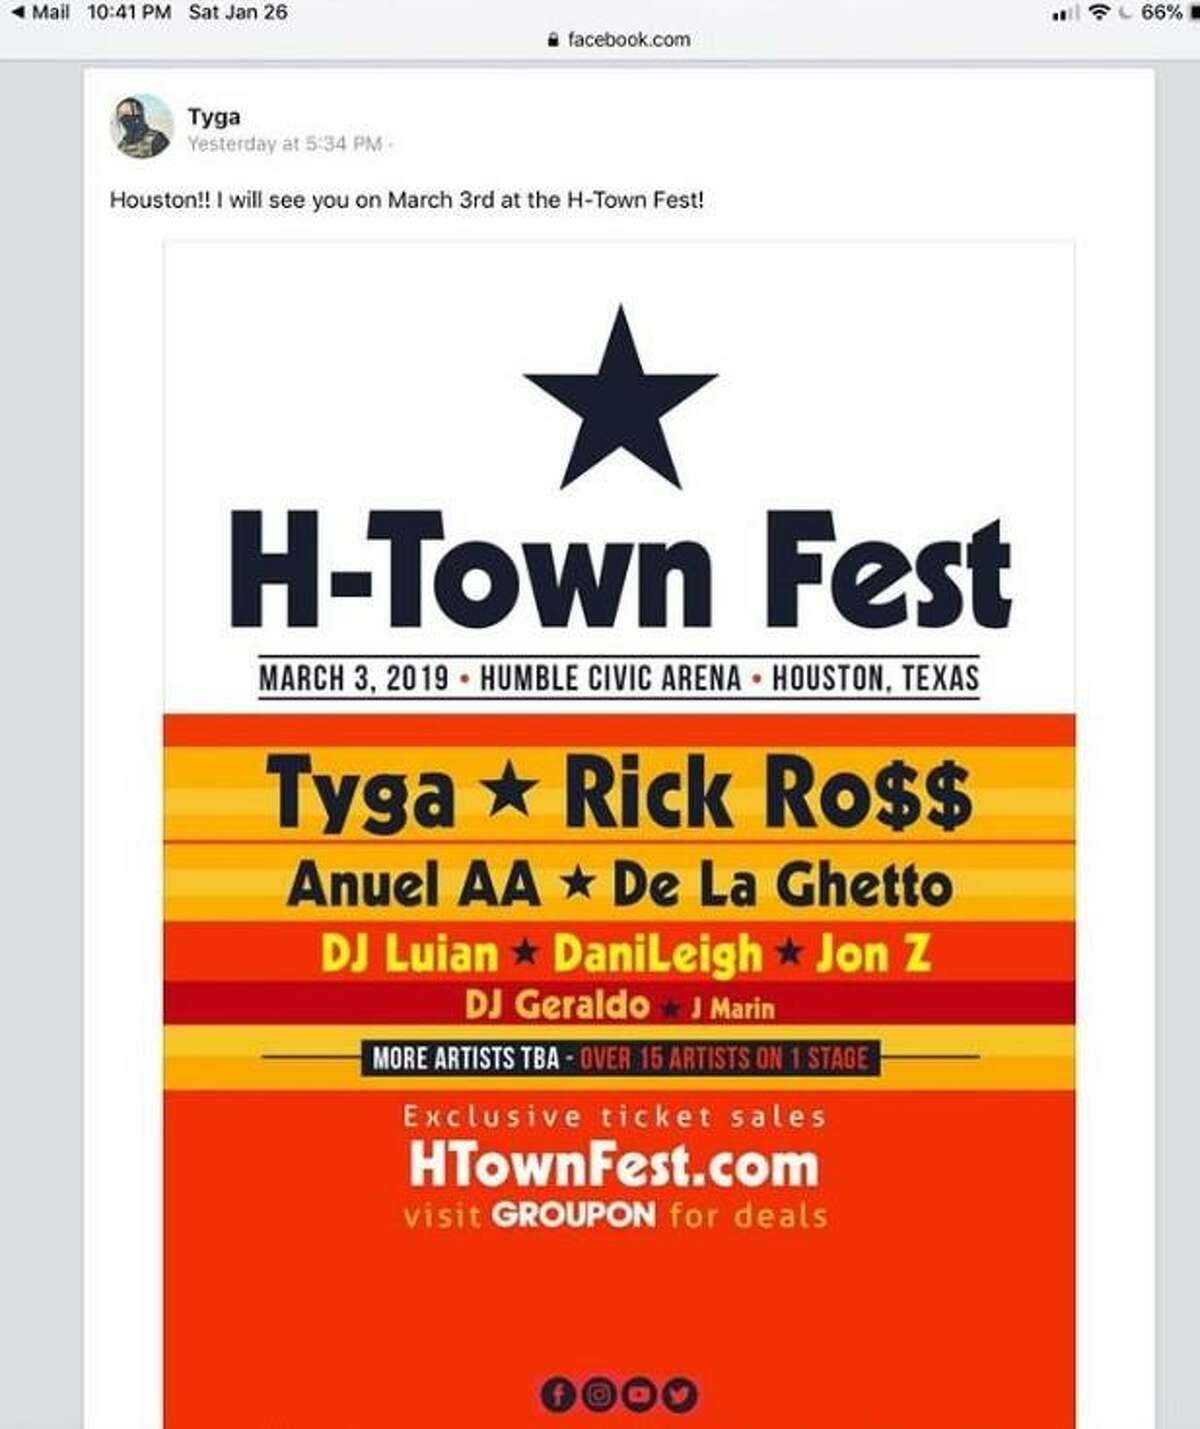 Tyga's reference to H-Town Fest is still visible on the organizers' Facebook page as well as the performer's.